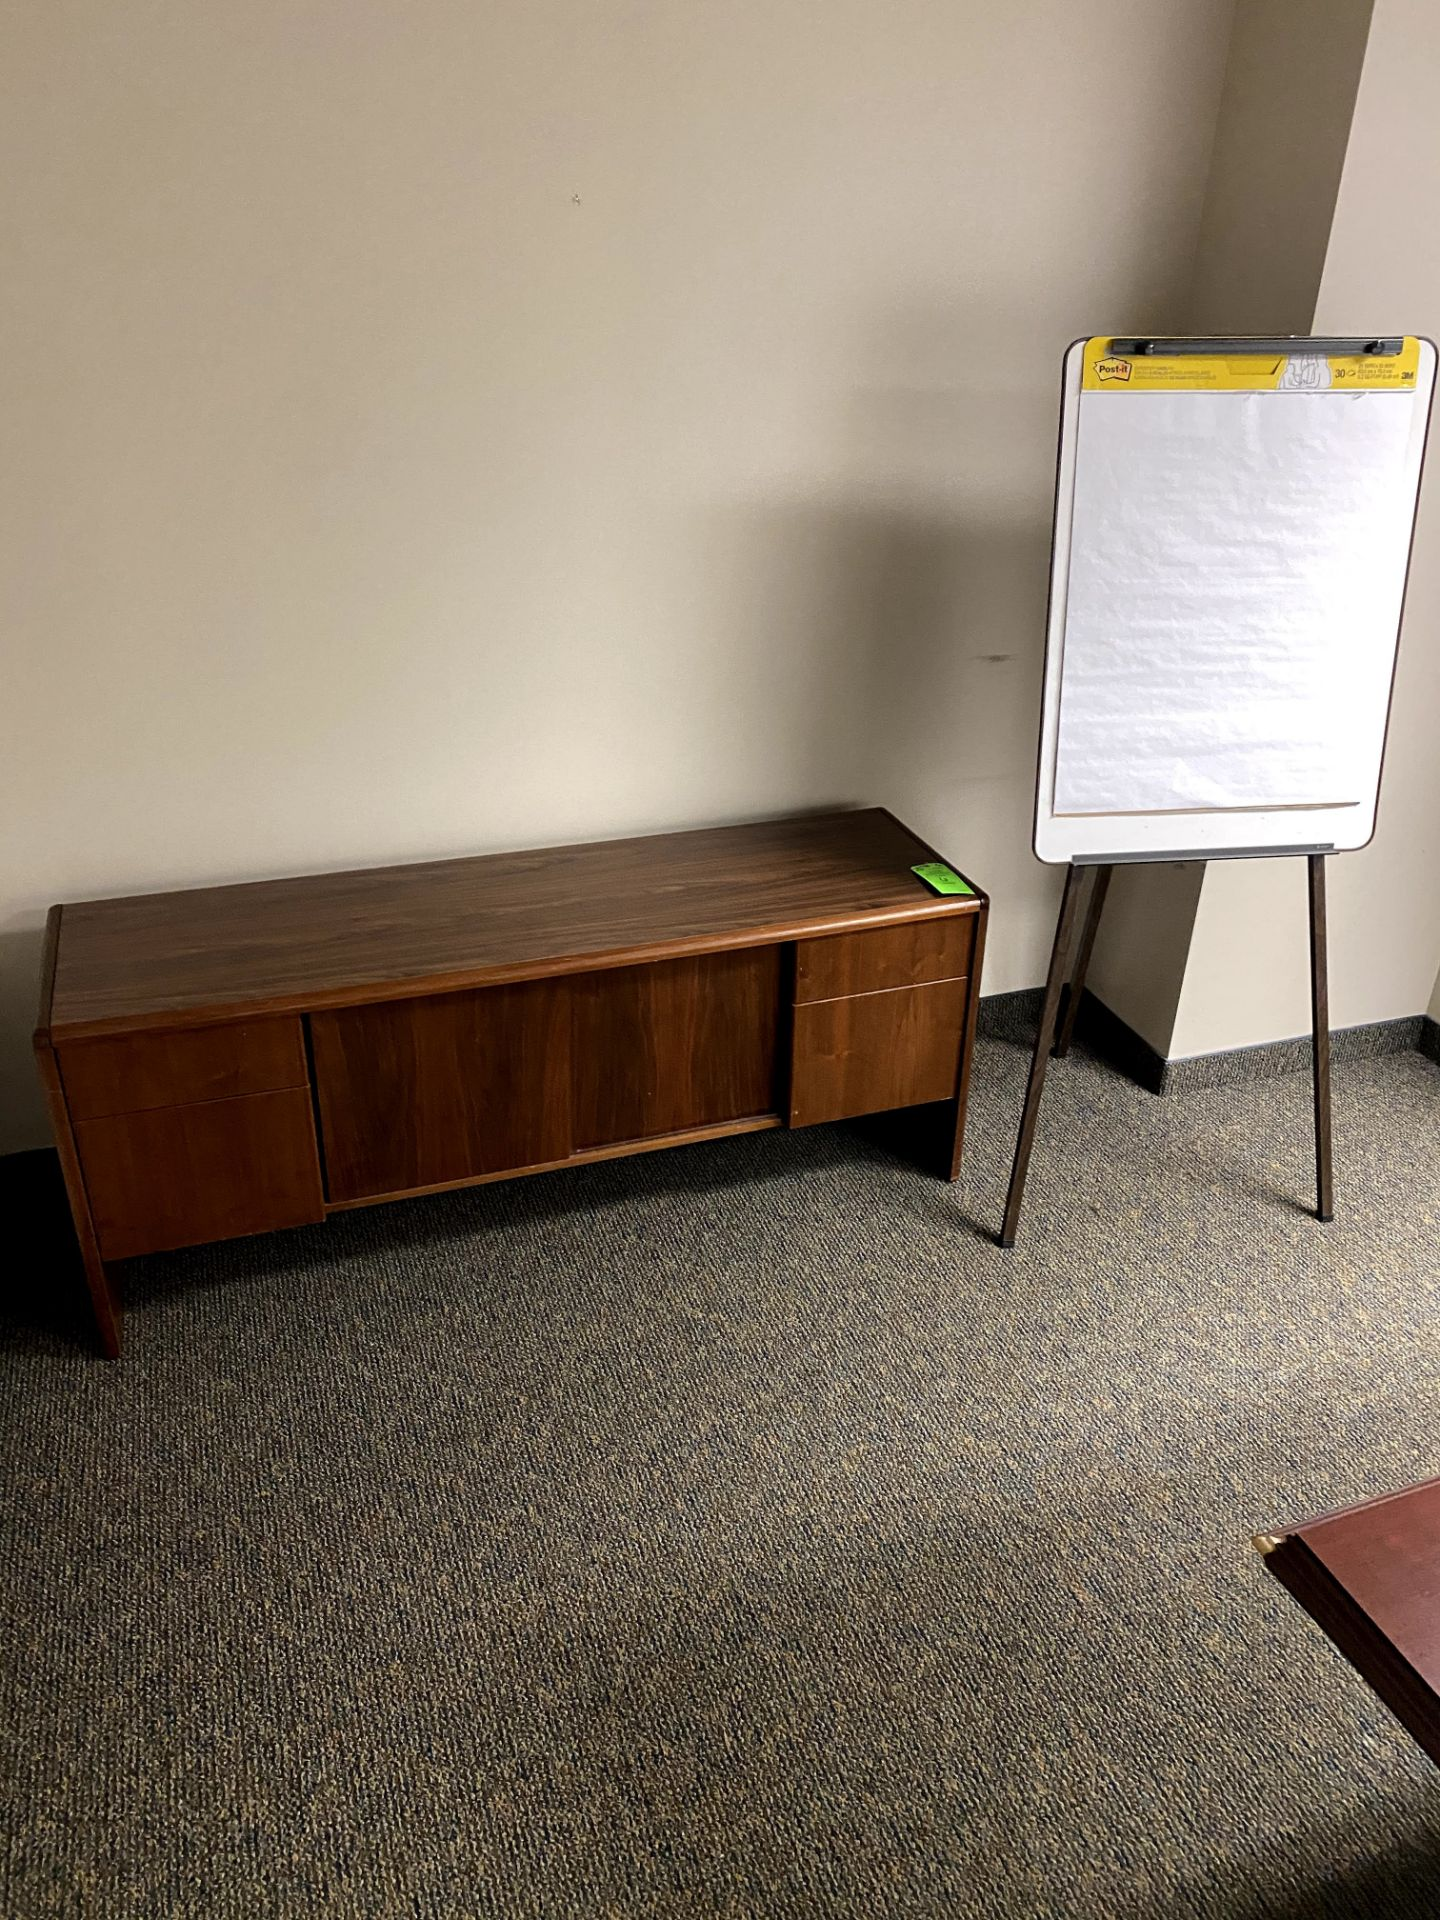 CREDENZA & EASEL -- (7625 OMNITECH PLACE VICTOR NEW YORK)